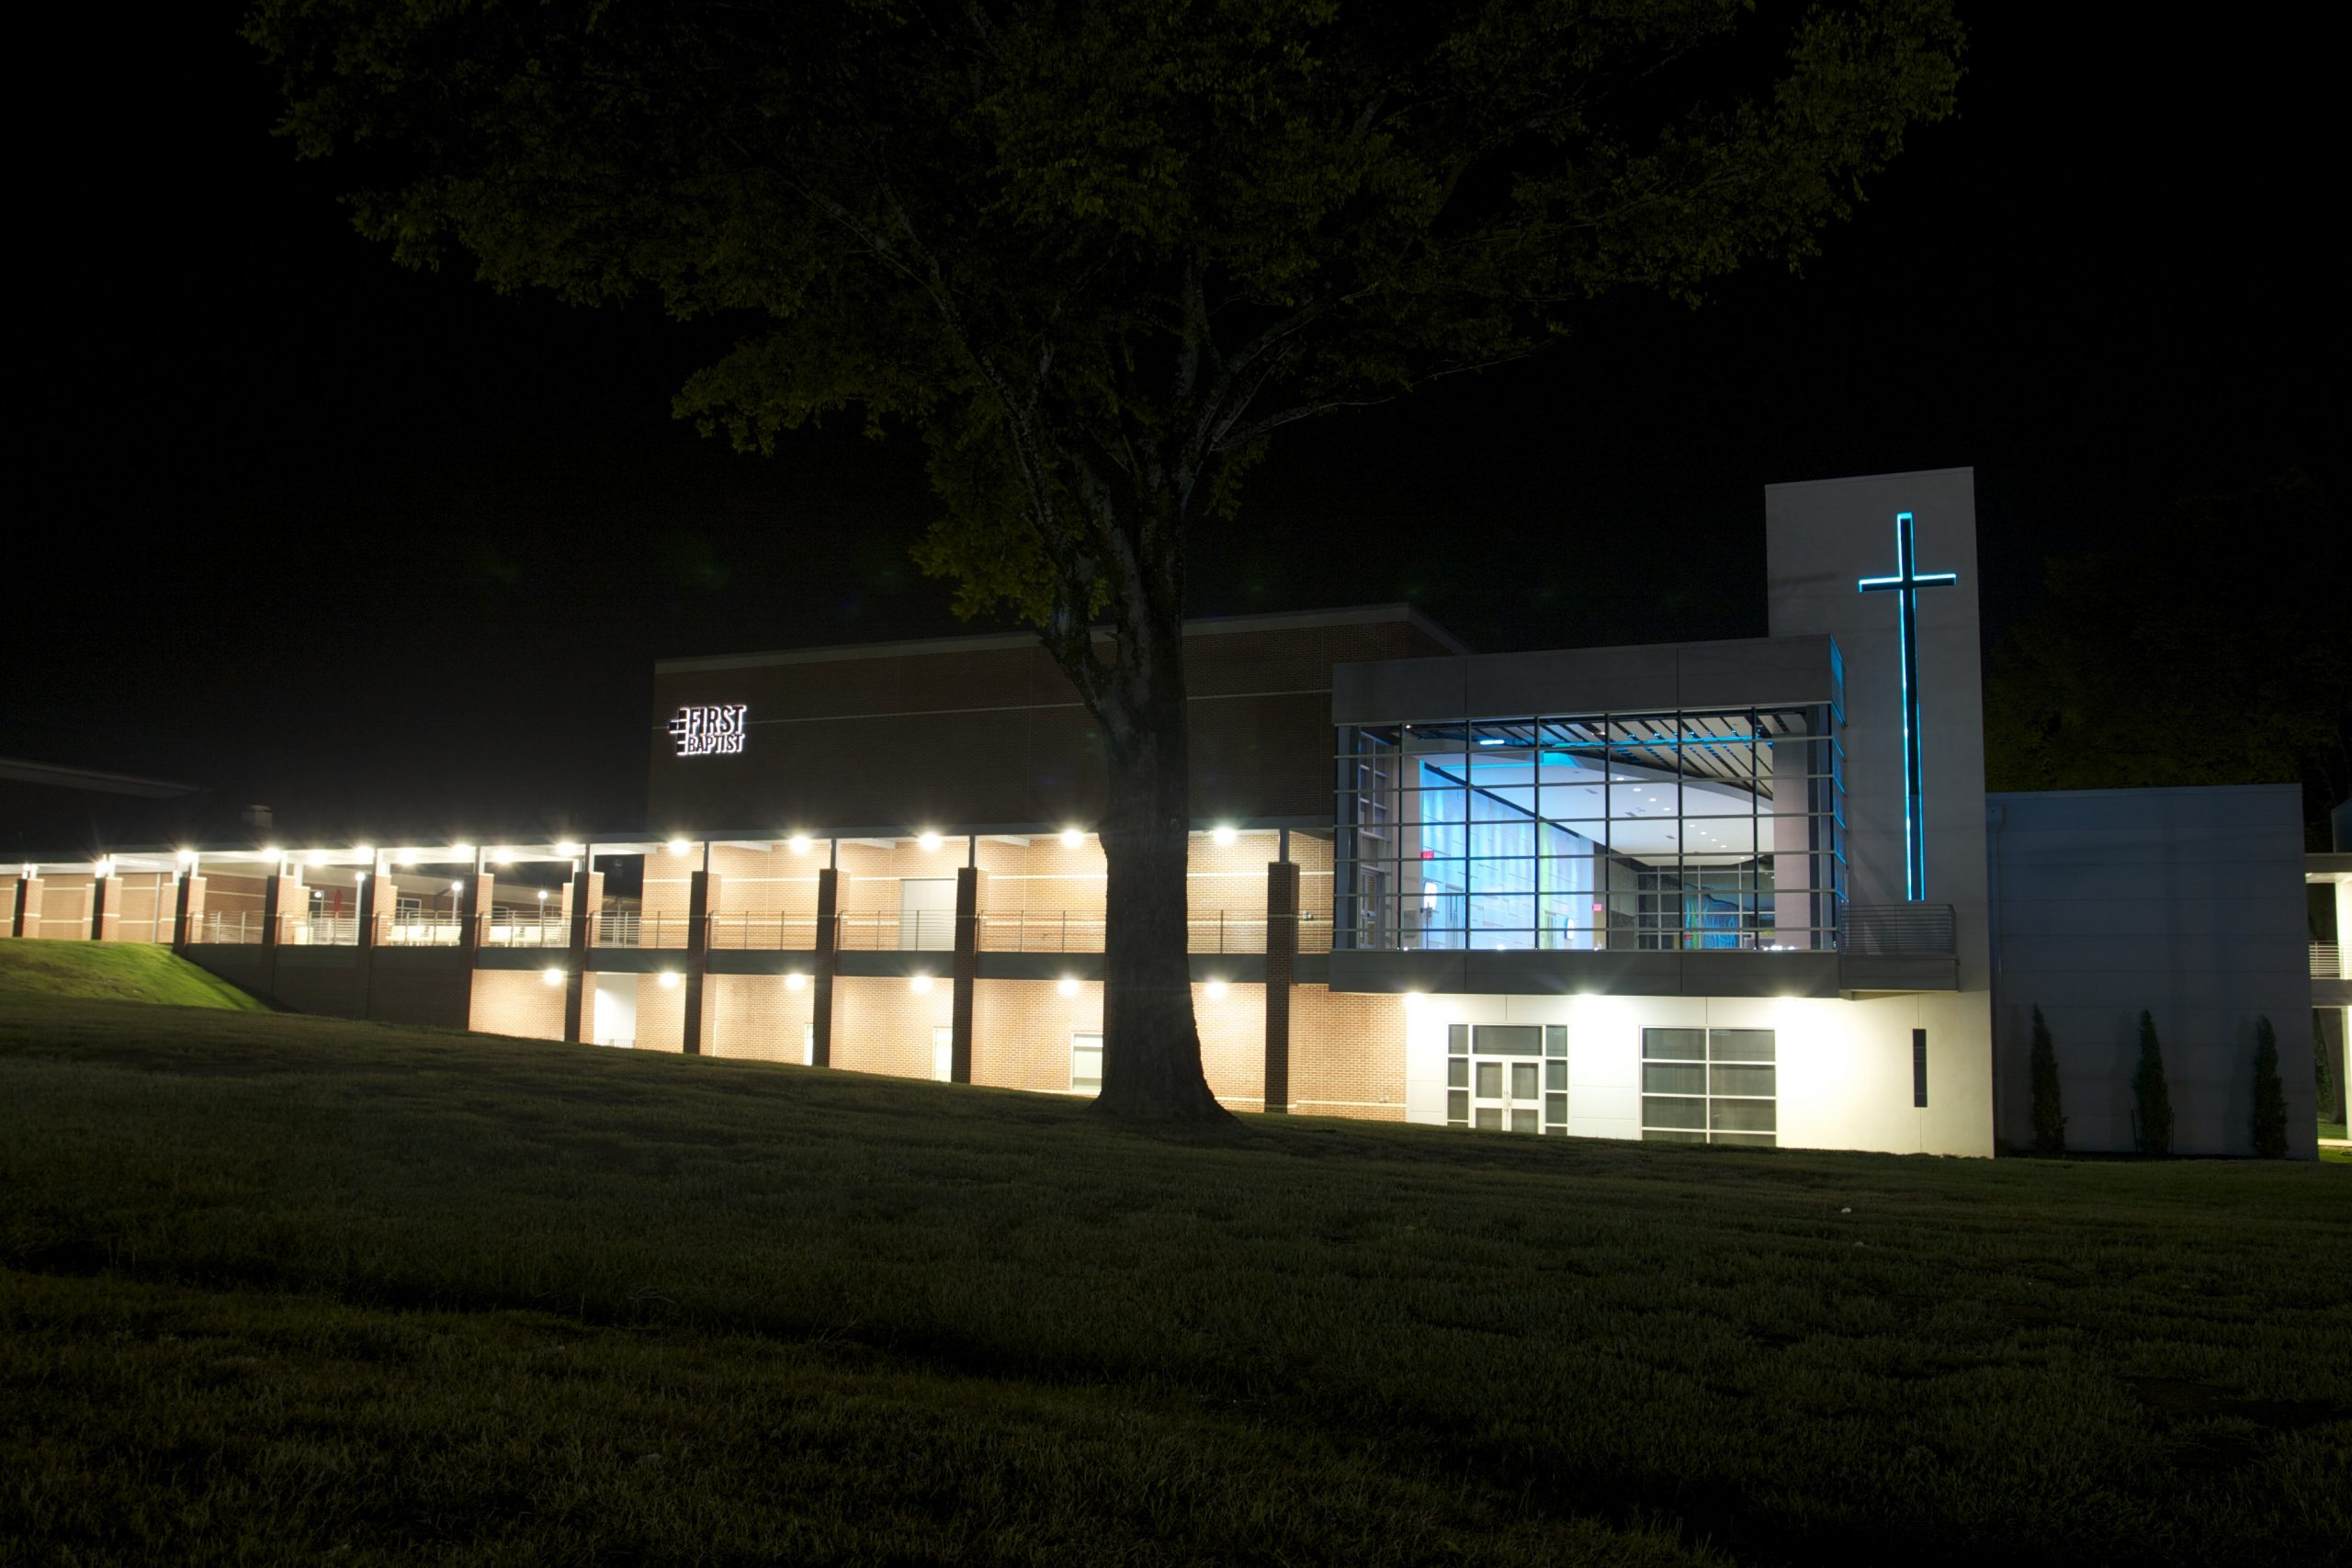 first baptist pittsburg worship center and children's ministry - churches designer in east texas - butler architectural group - mike butler